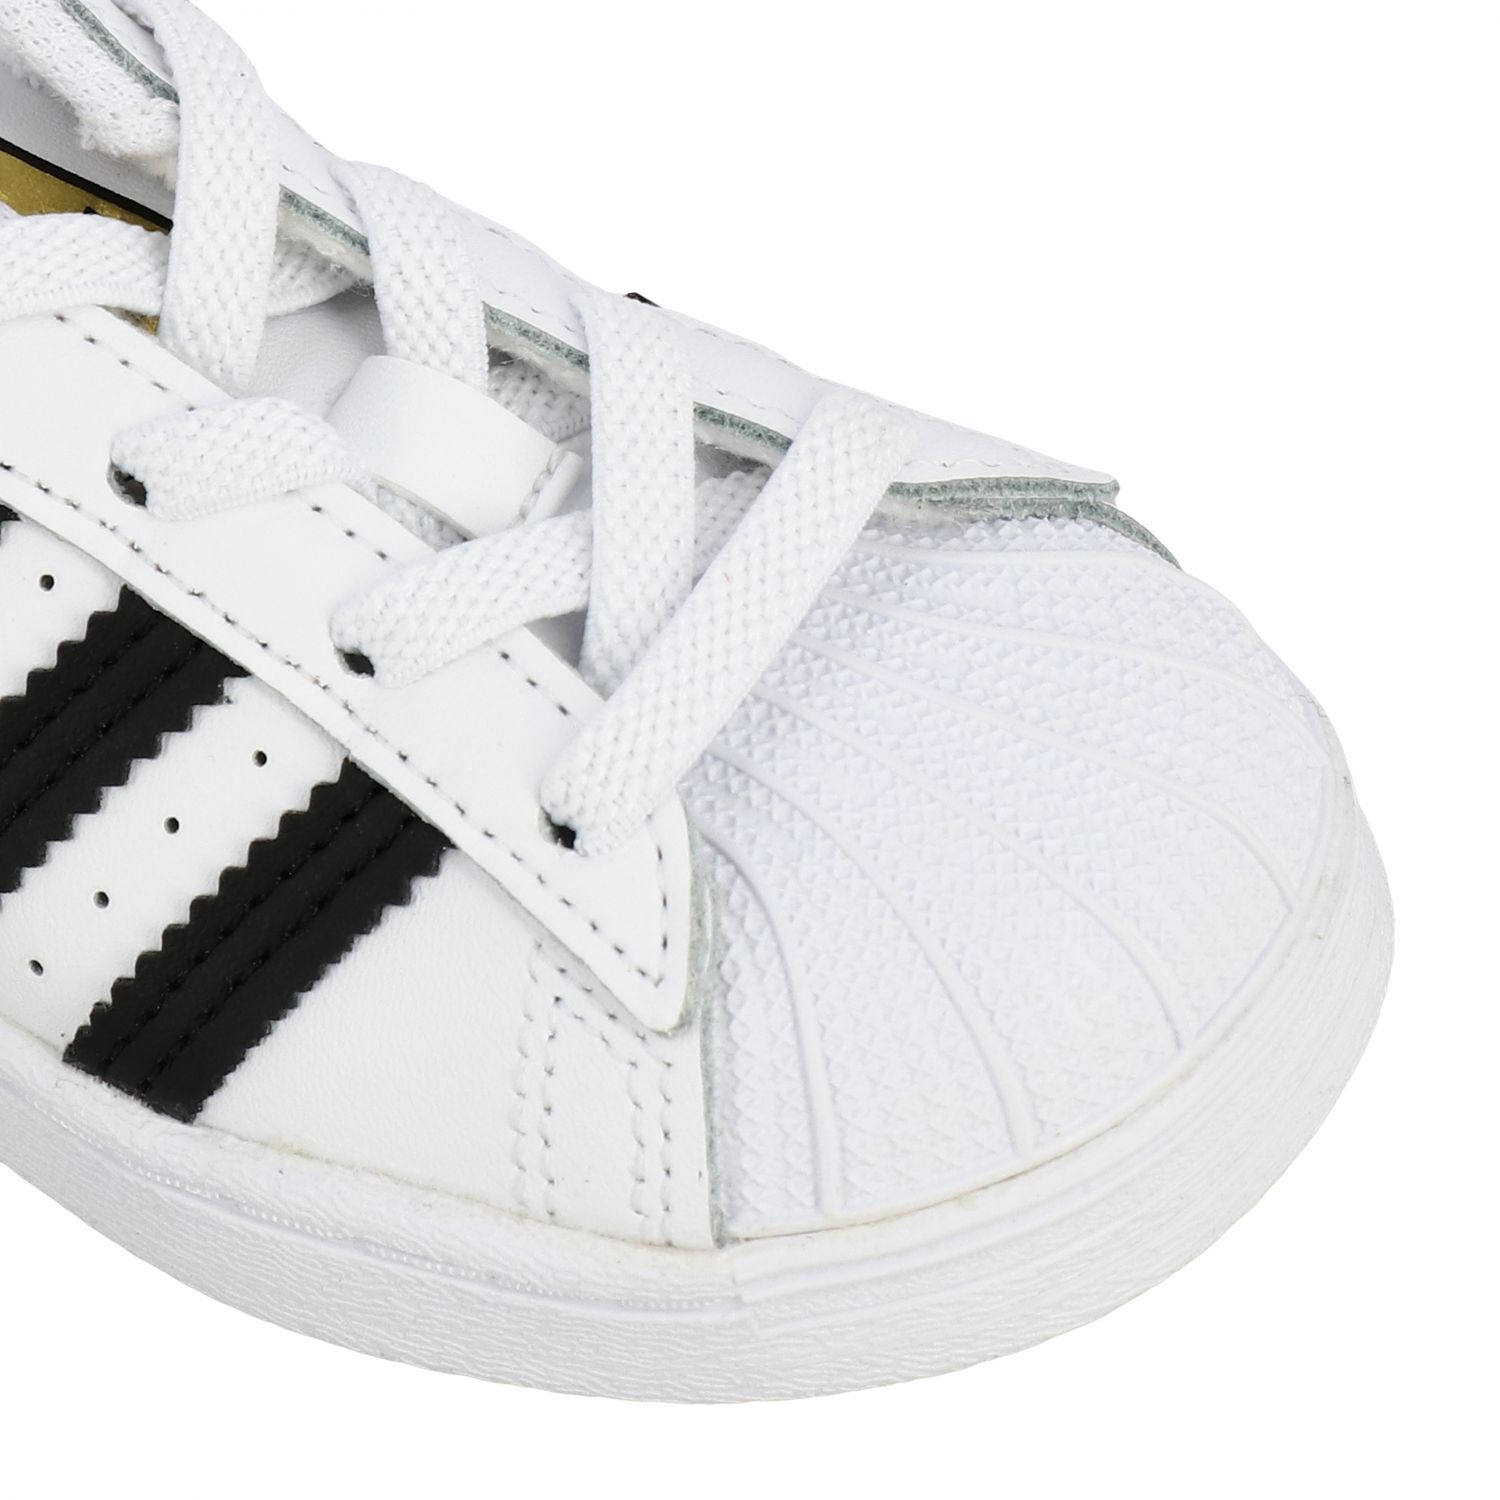 Shoes Adidas Originals: Superstar Adidas Originals leather sneakers white 4